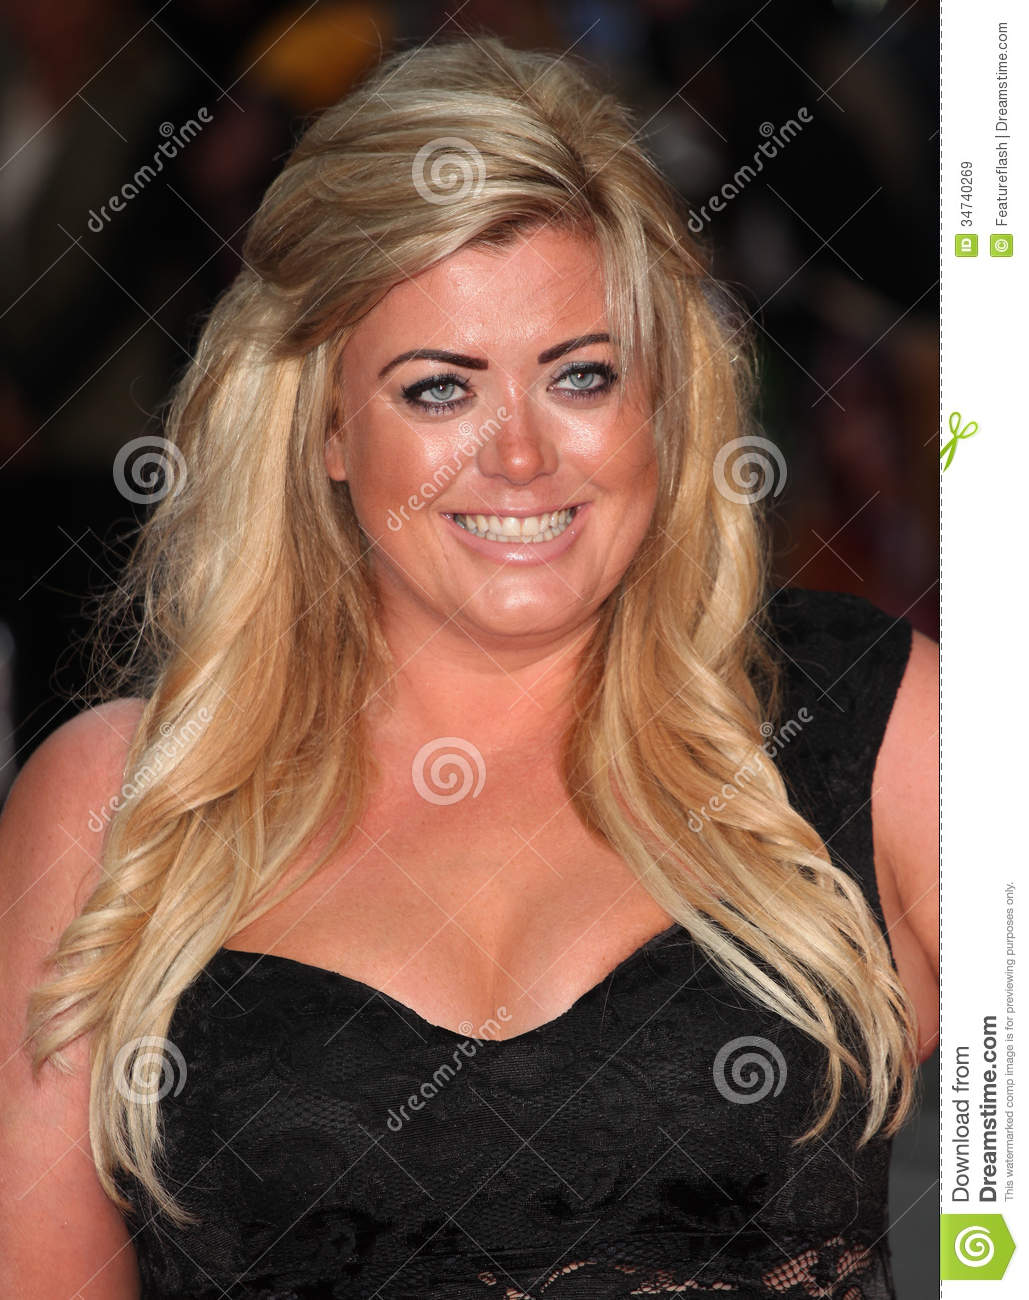 Gemma Collins Nude Photos 1